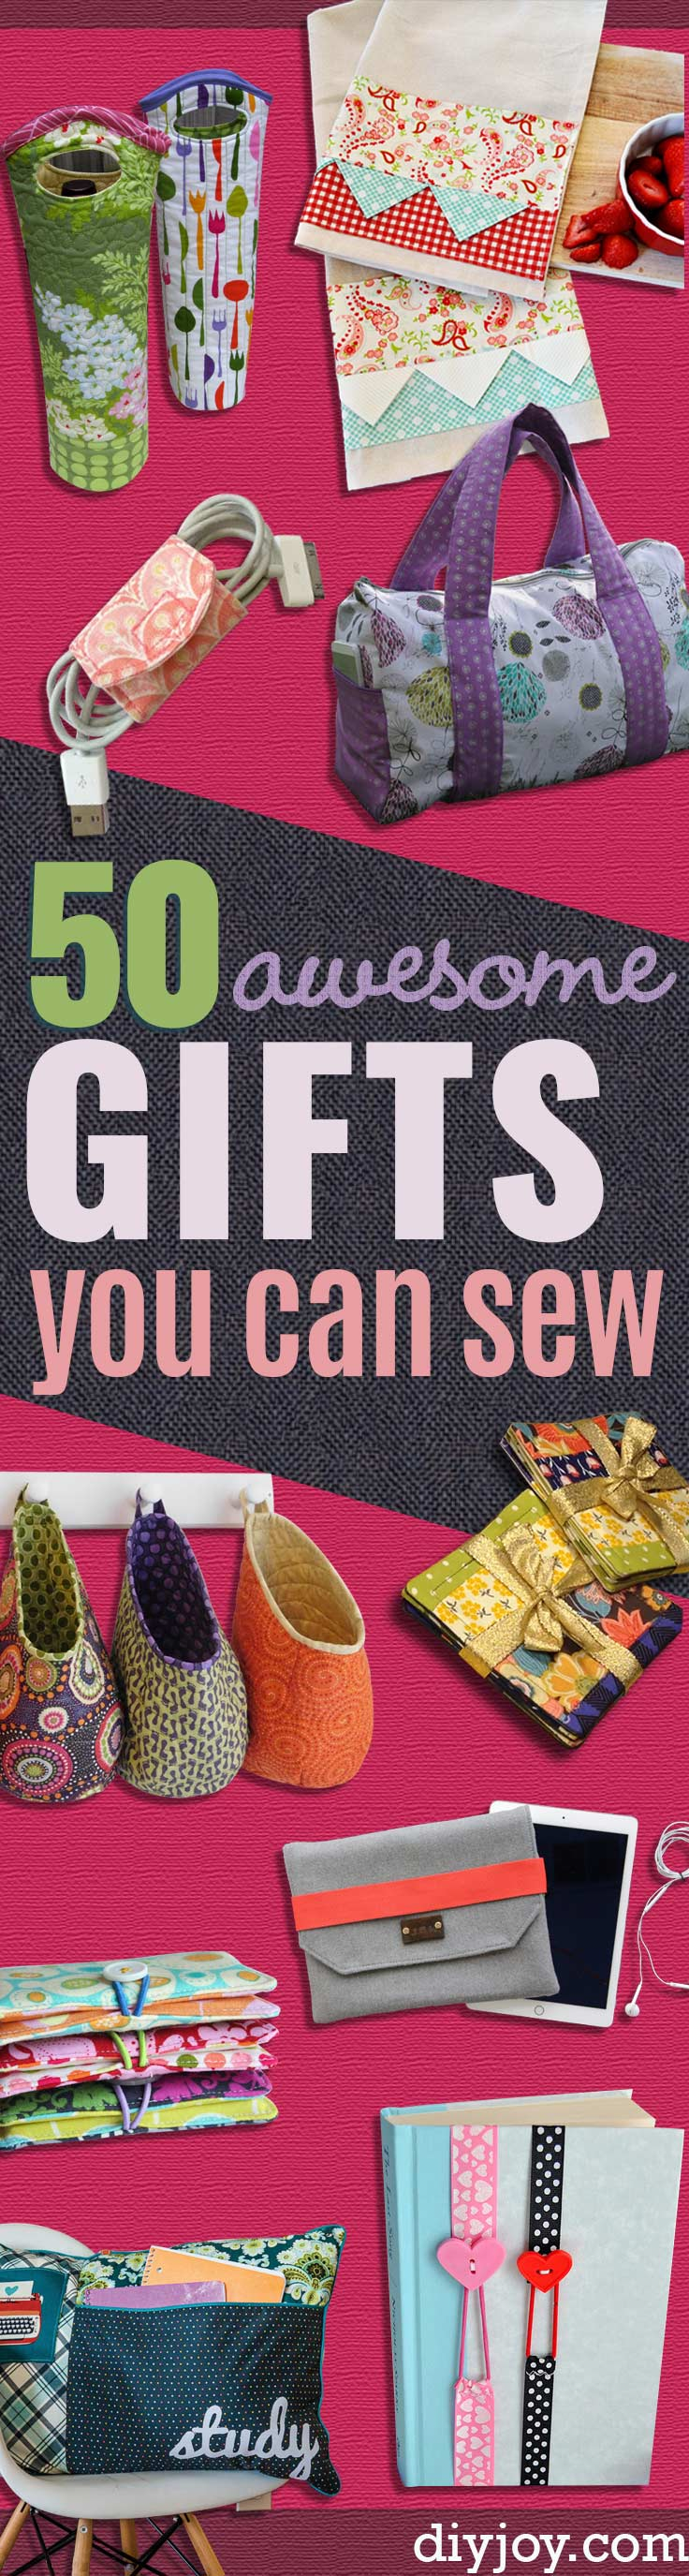 DIY Sewing Gift Ideas for Adults and Kids, Teens, Women, Men and Baby - Cute and Easy DIY Sewing Projects Make Awesome Presents for Mom, Dad, Husband, Boyfriend, Children